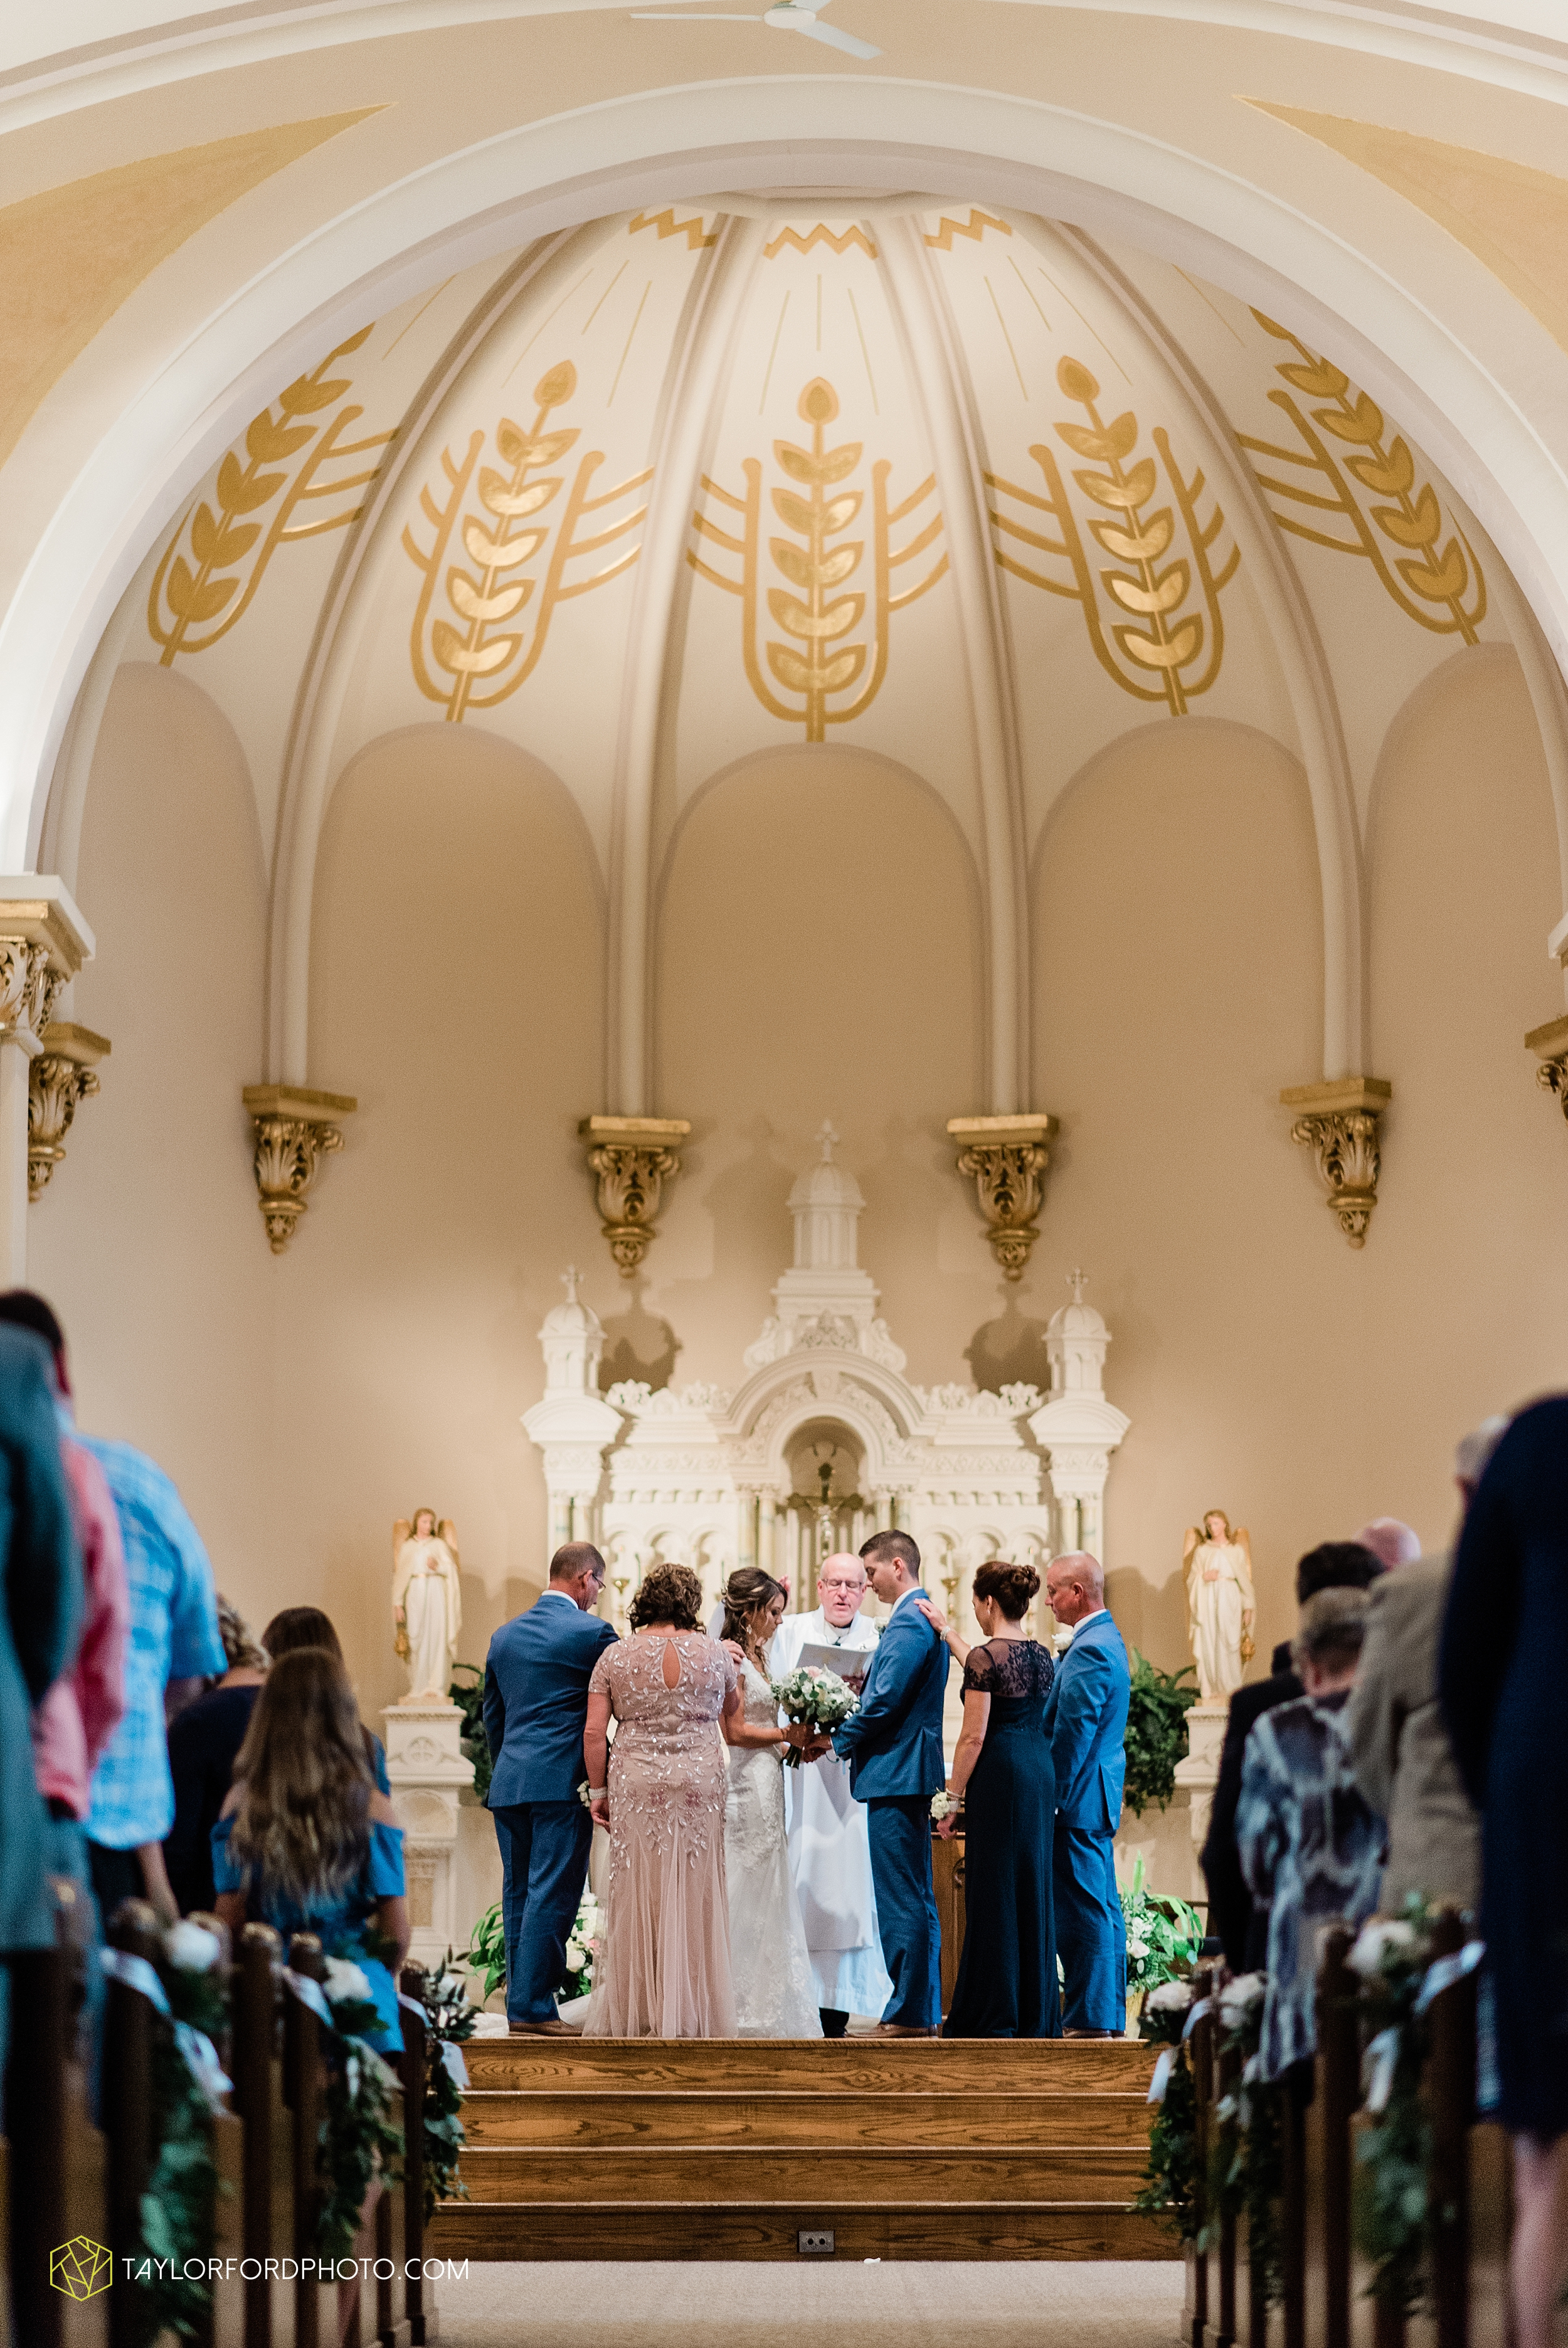 kacee-haden-sholl-second-story-saint-marys-knights-of-columbus-defiance-ohio-wedding-photographer-taylor-ford-photography_0155.jpg